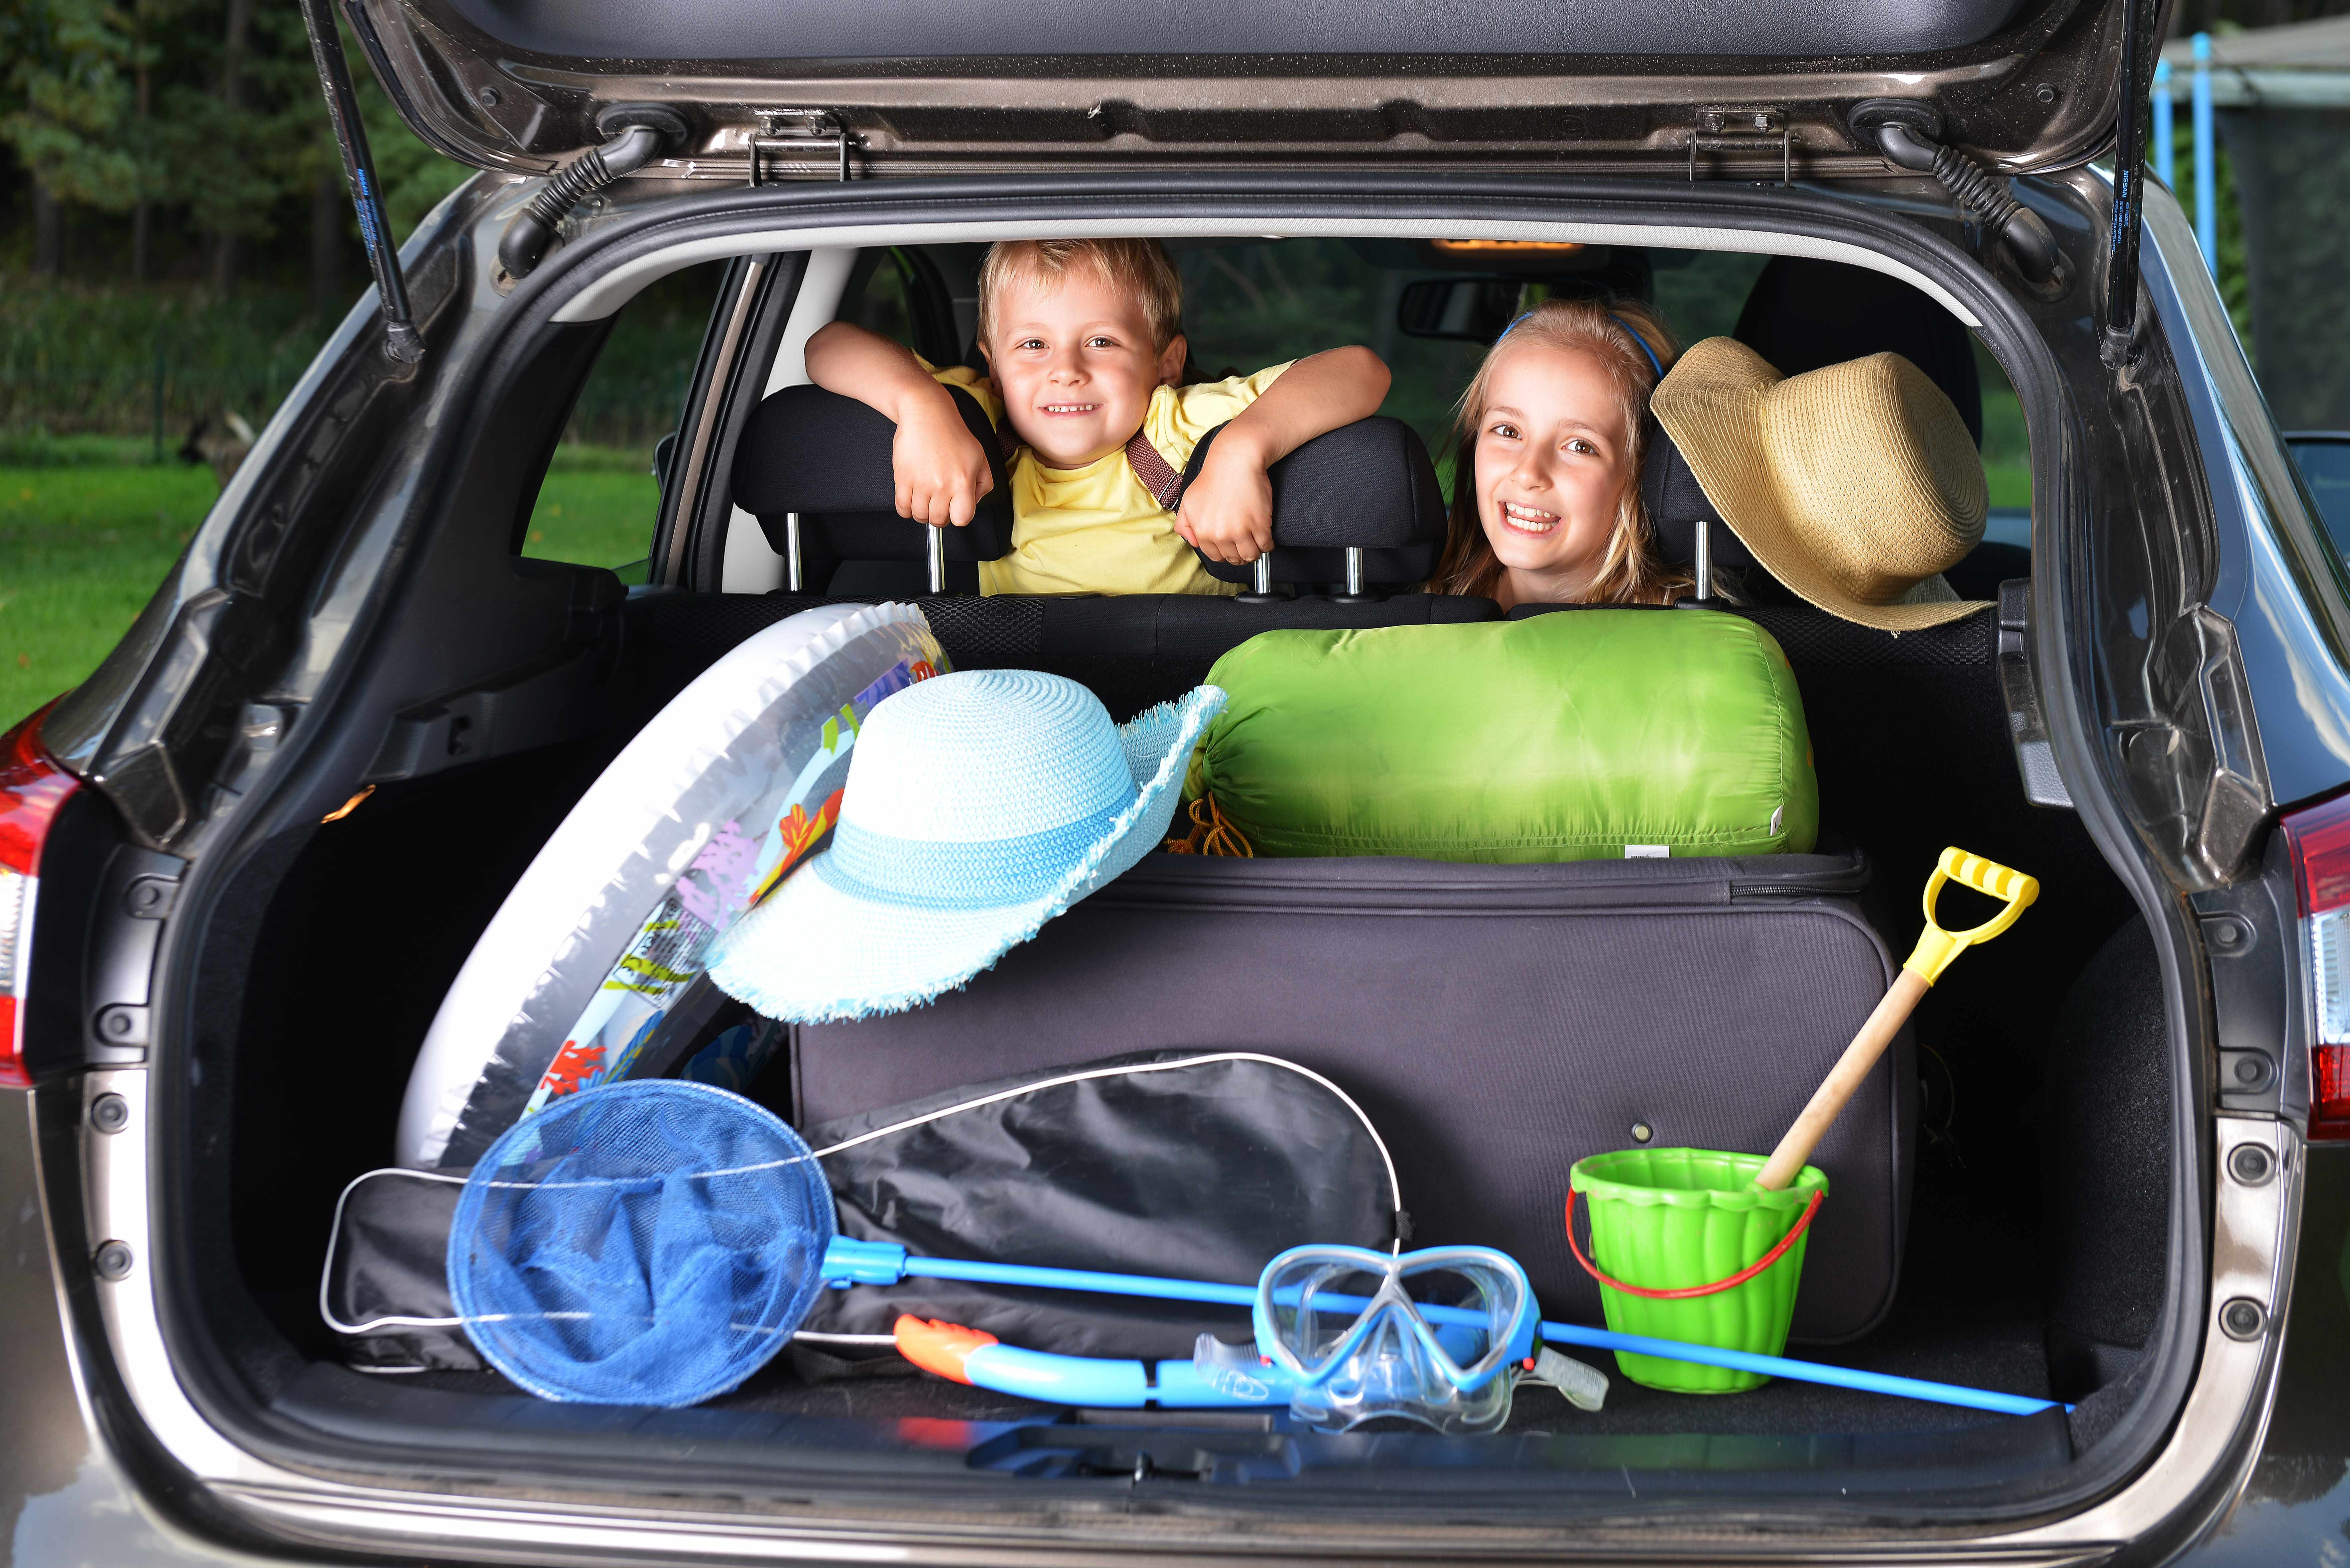 two children in a car with beach toys and vacation items packed in the back